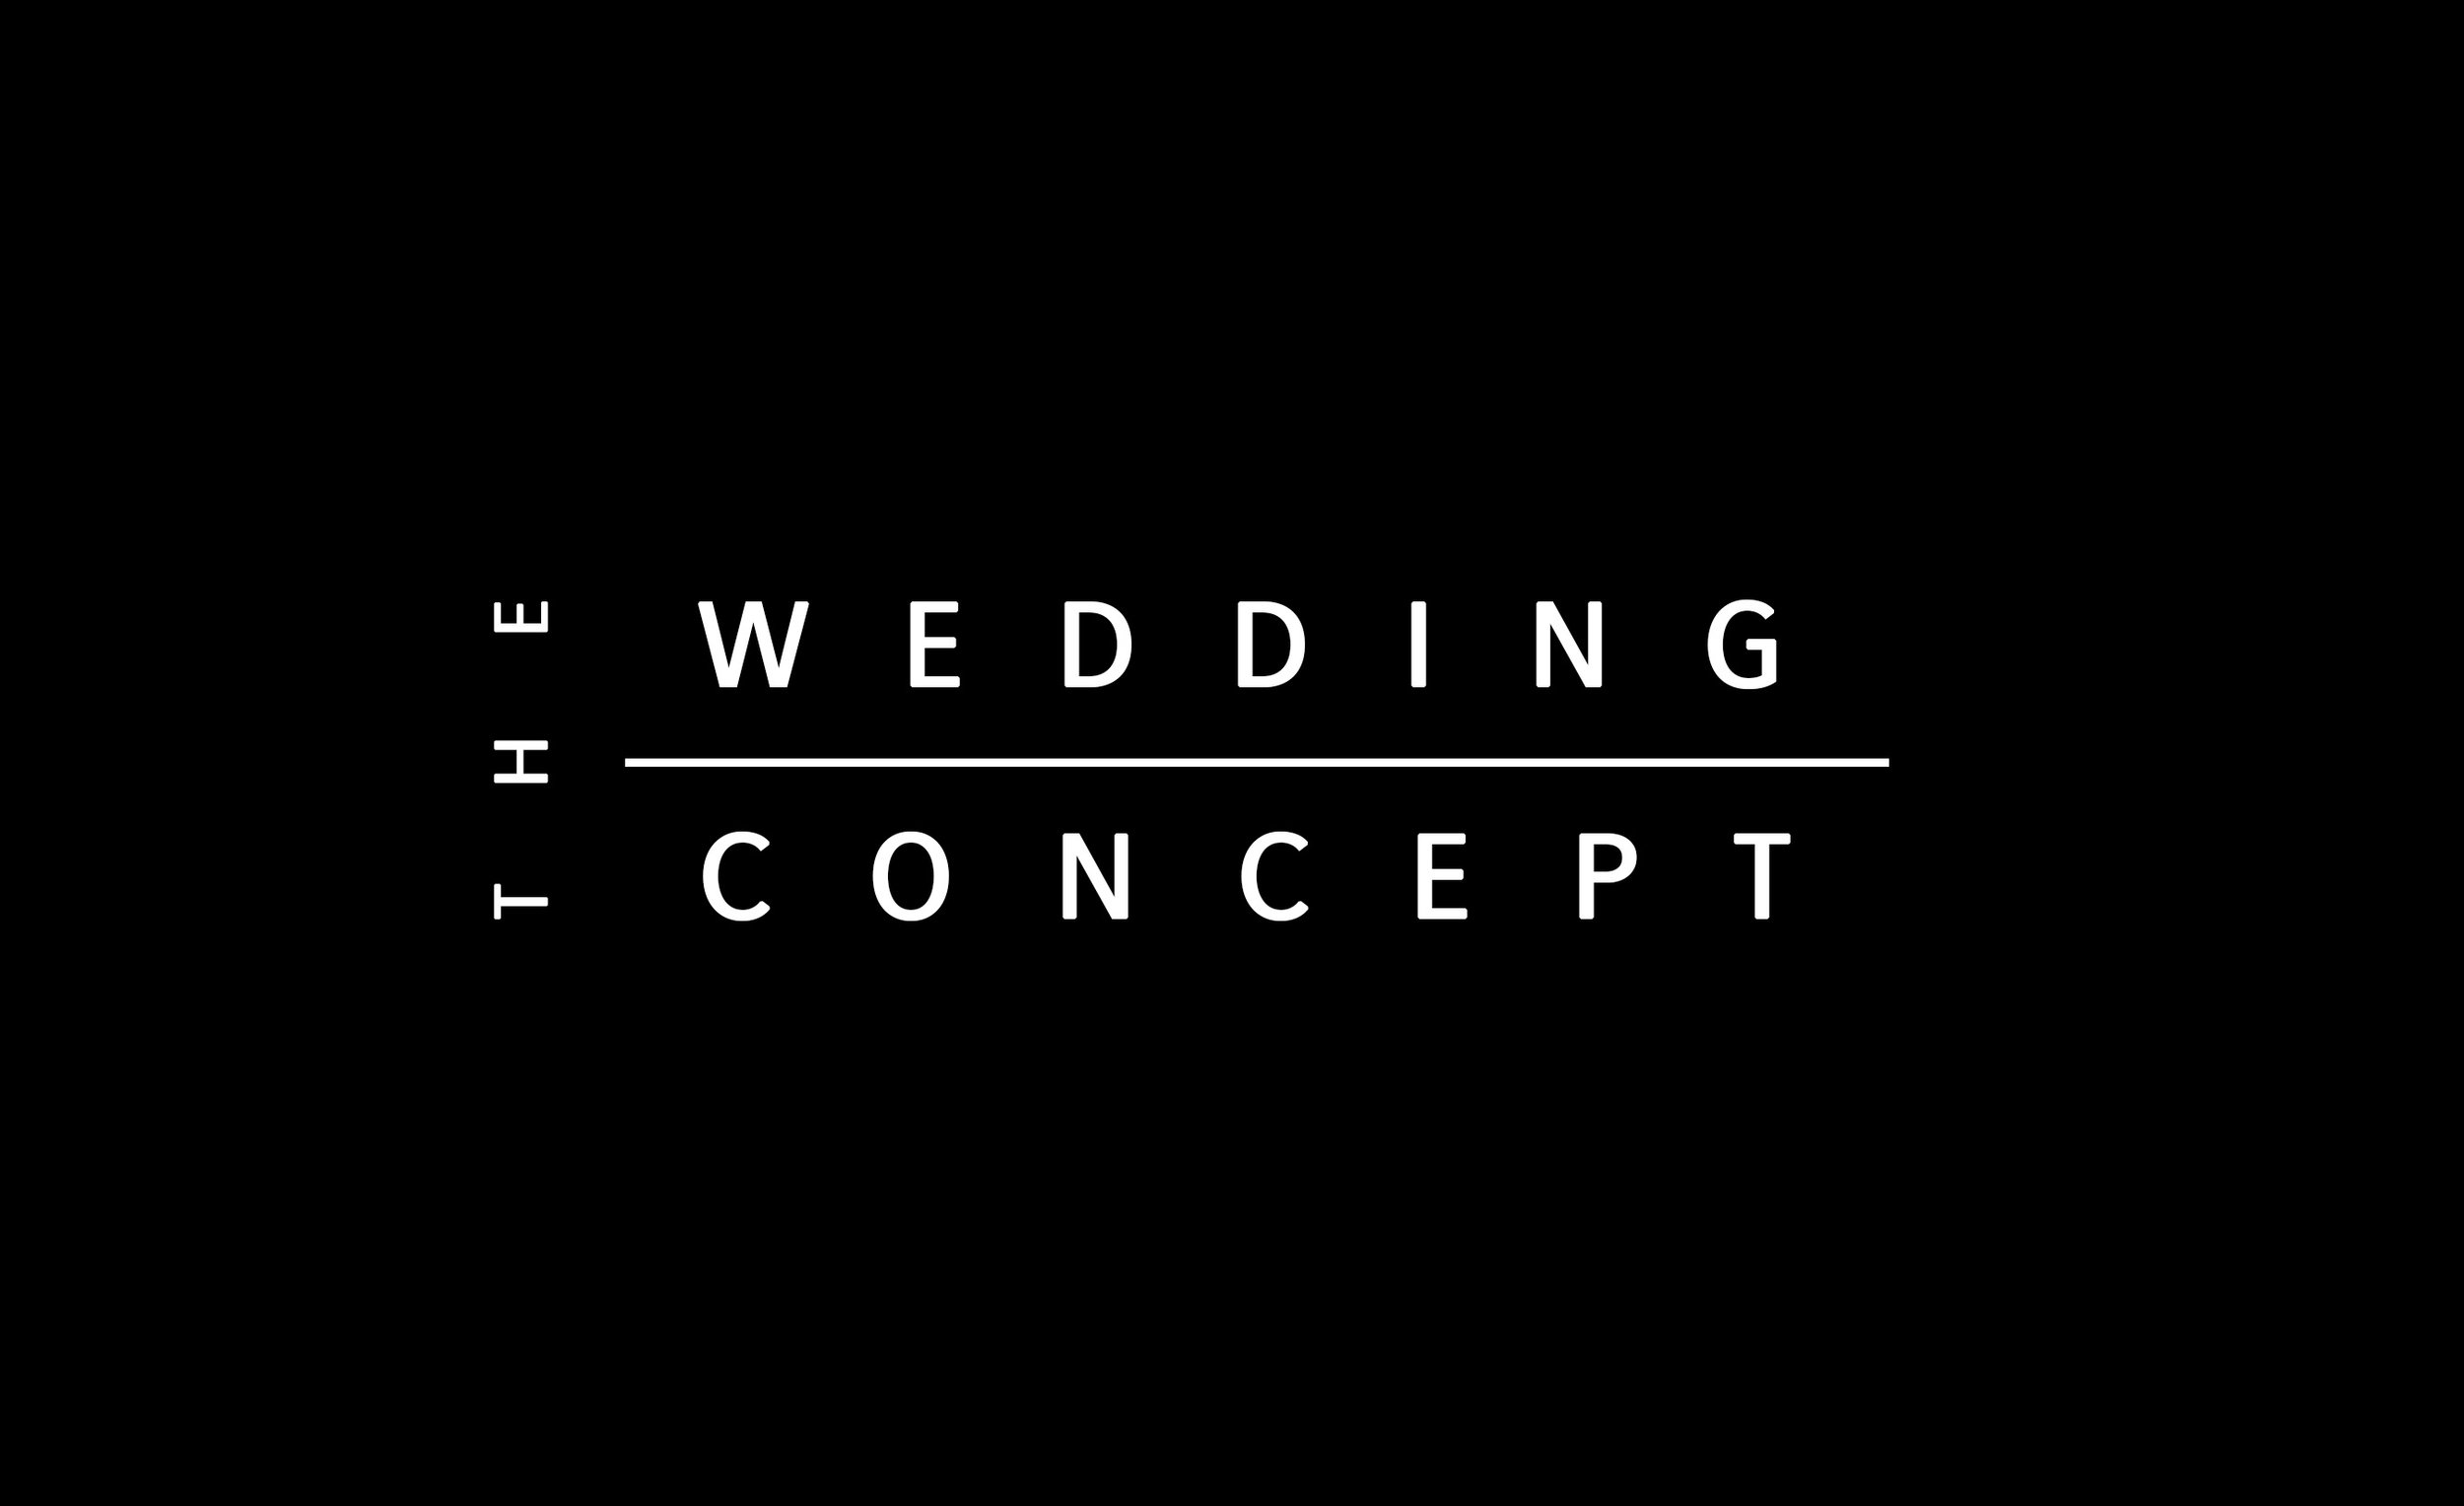 Kim Borgogno - The Wedding Concept Logo 1.jpg